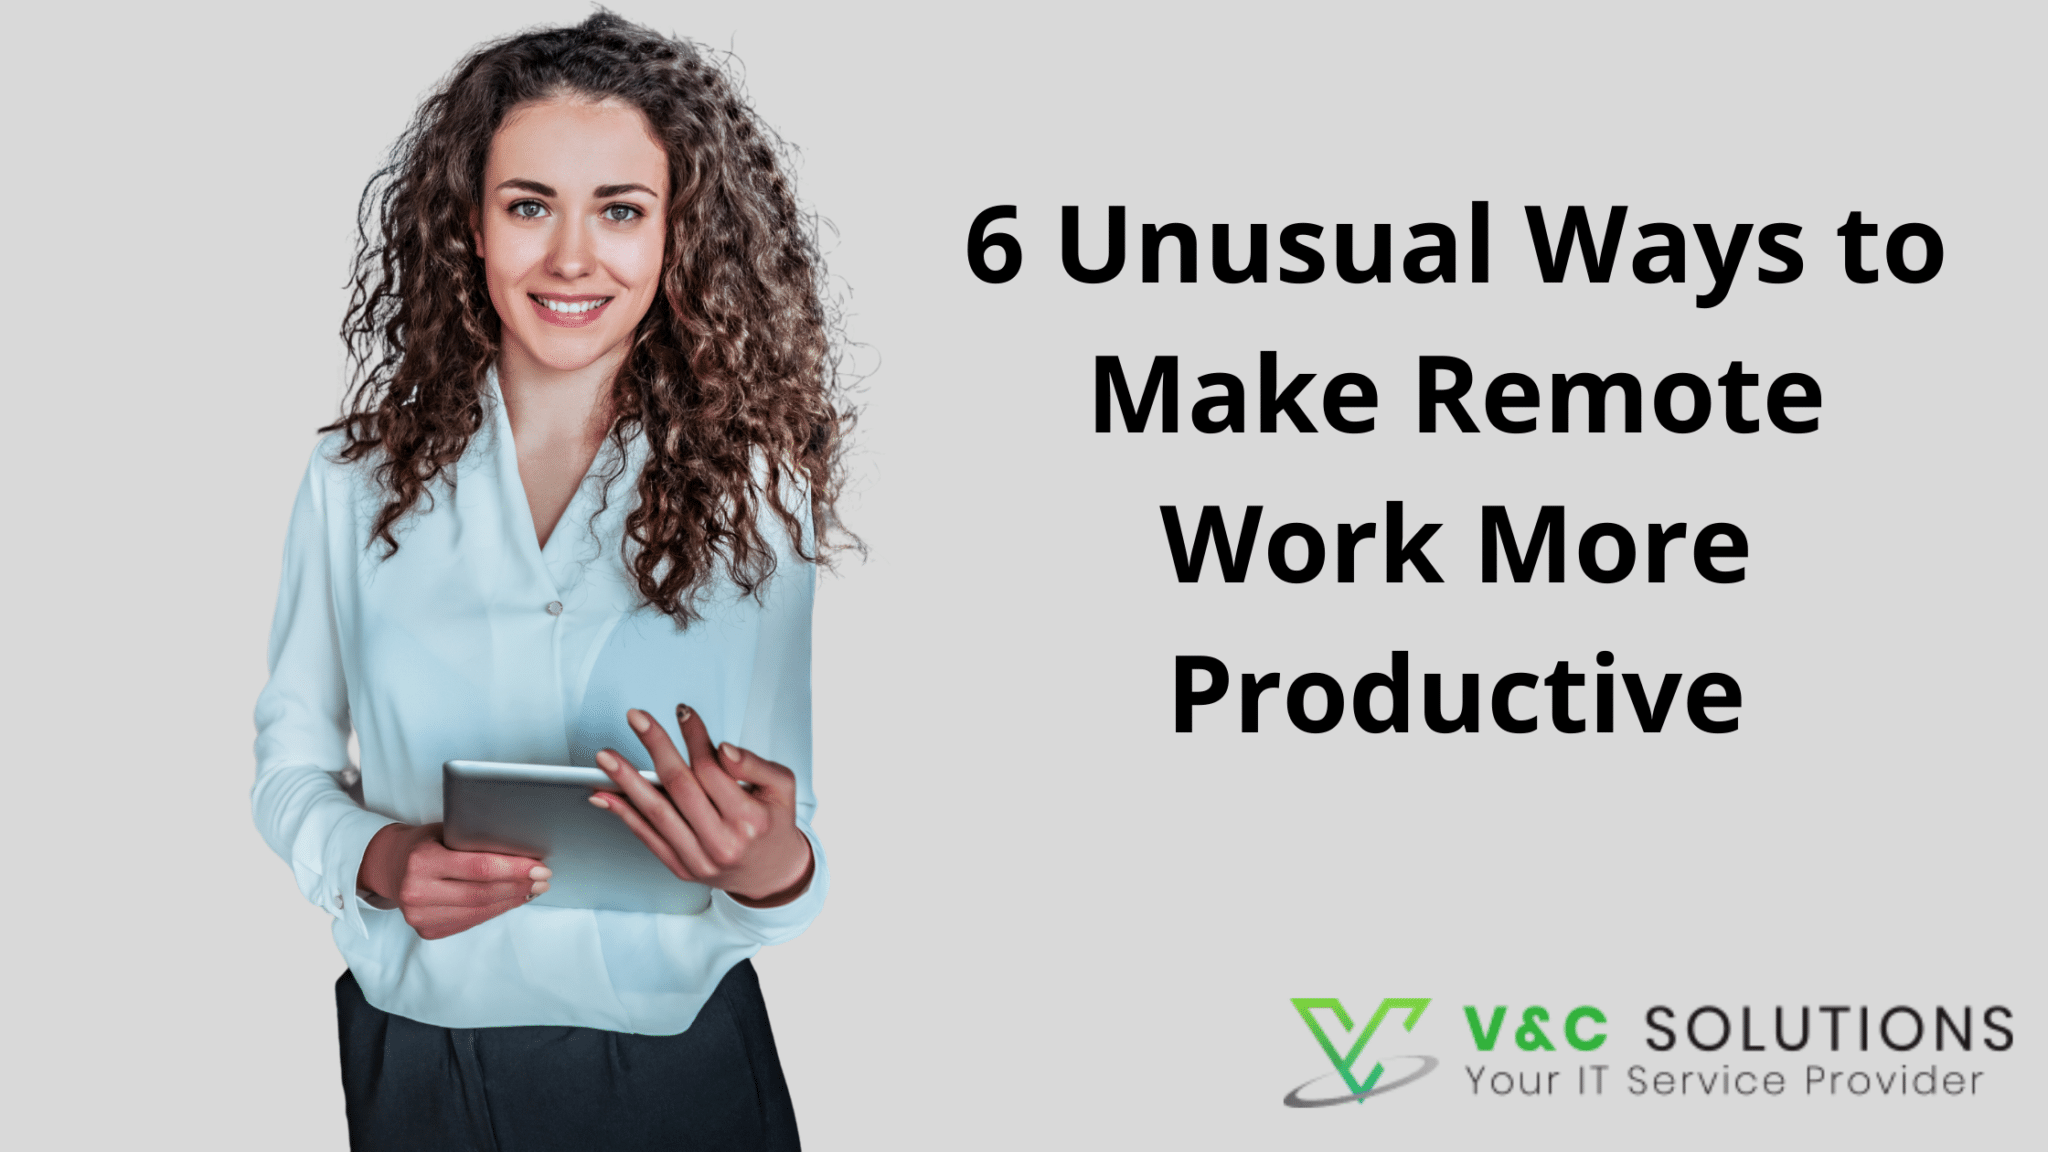 6 Unusual Ways to Make Remote Work More Productive